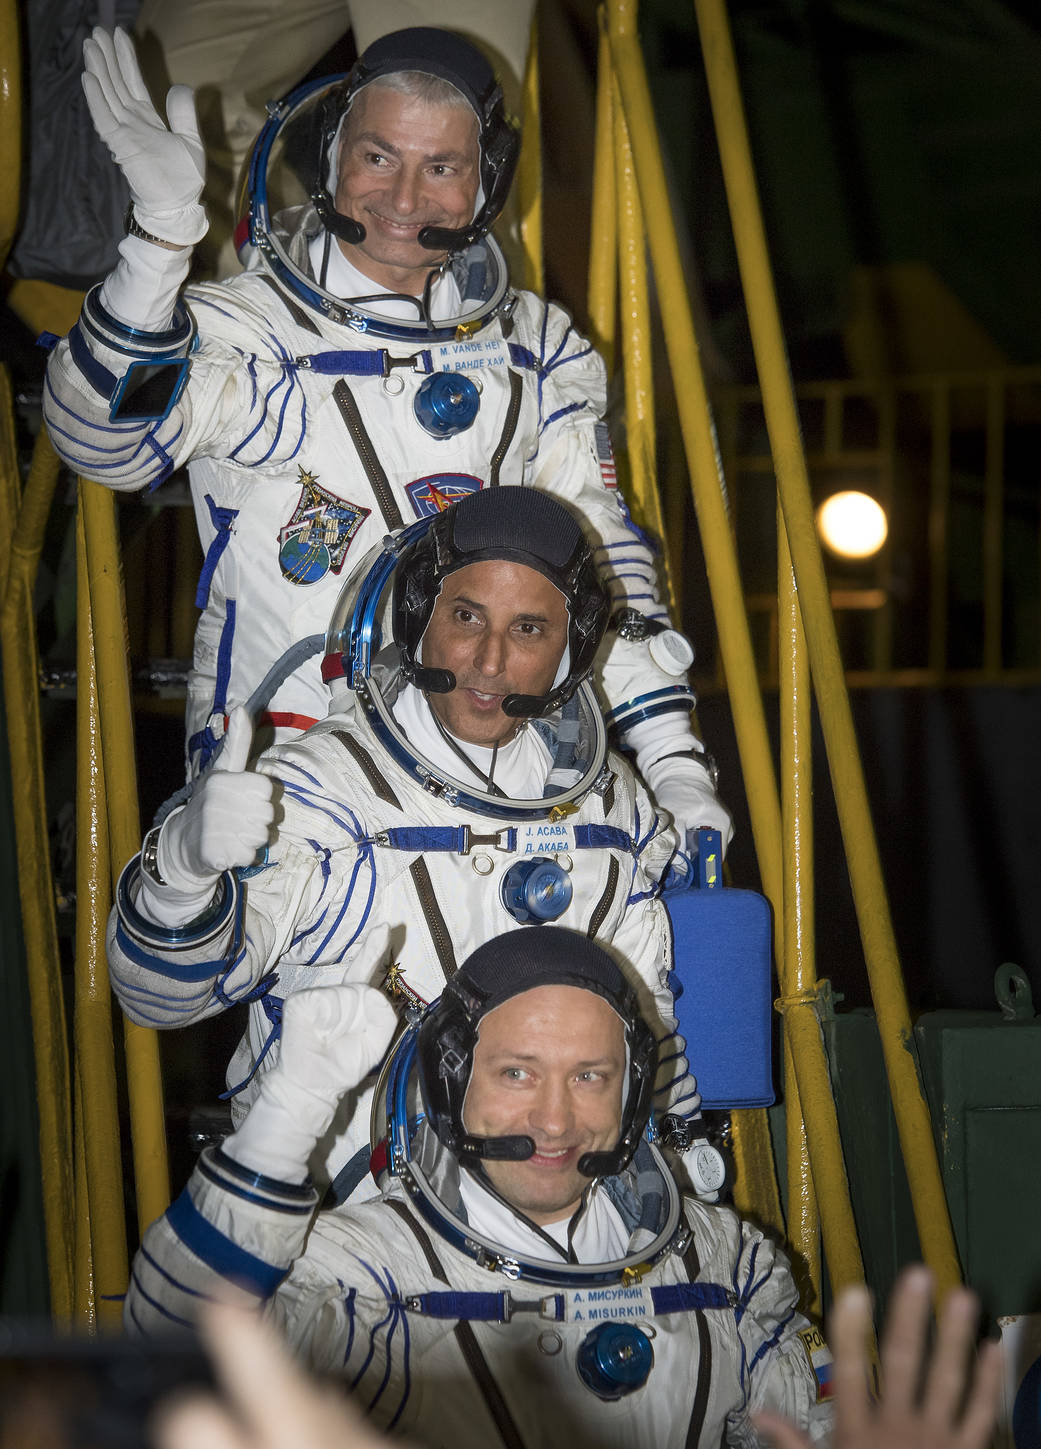 Three astronauts in Sokol suits wave farewell before boarding Soyuz